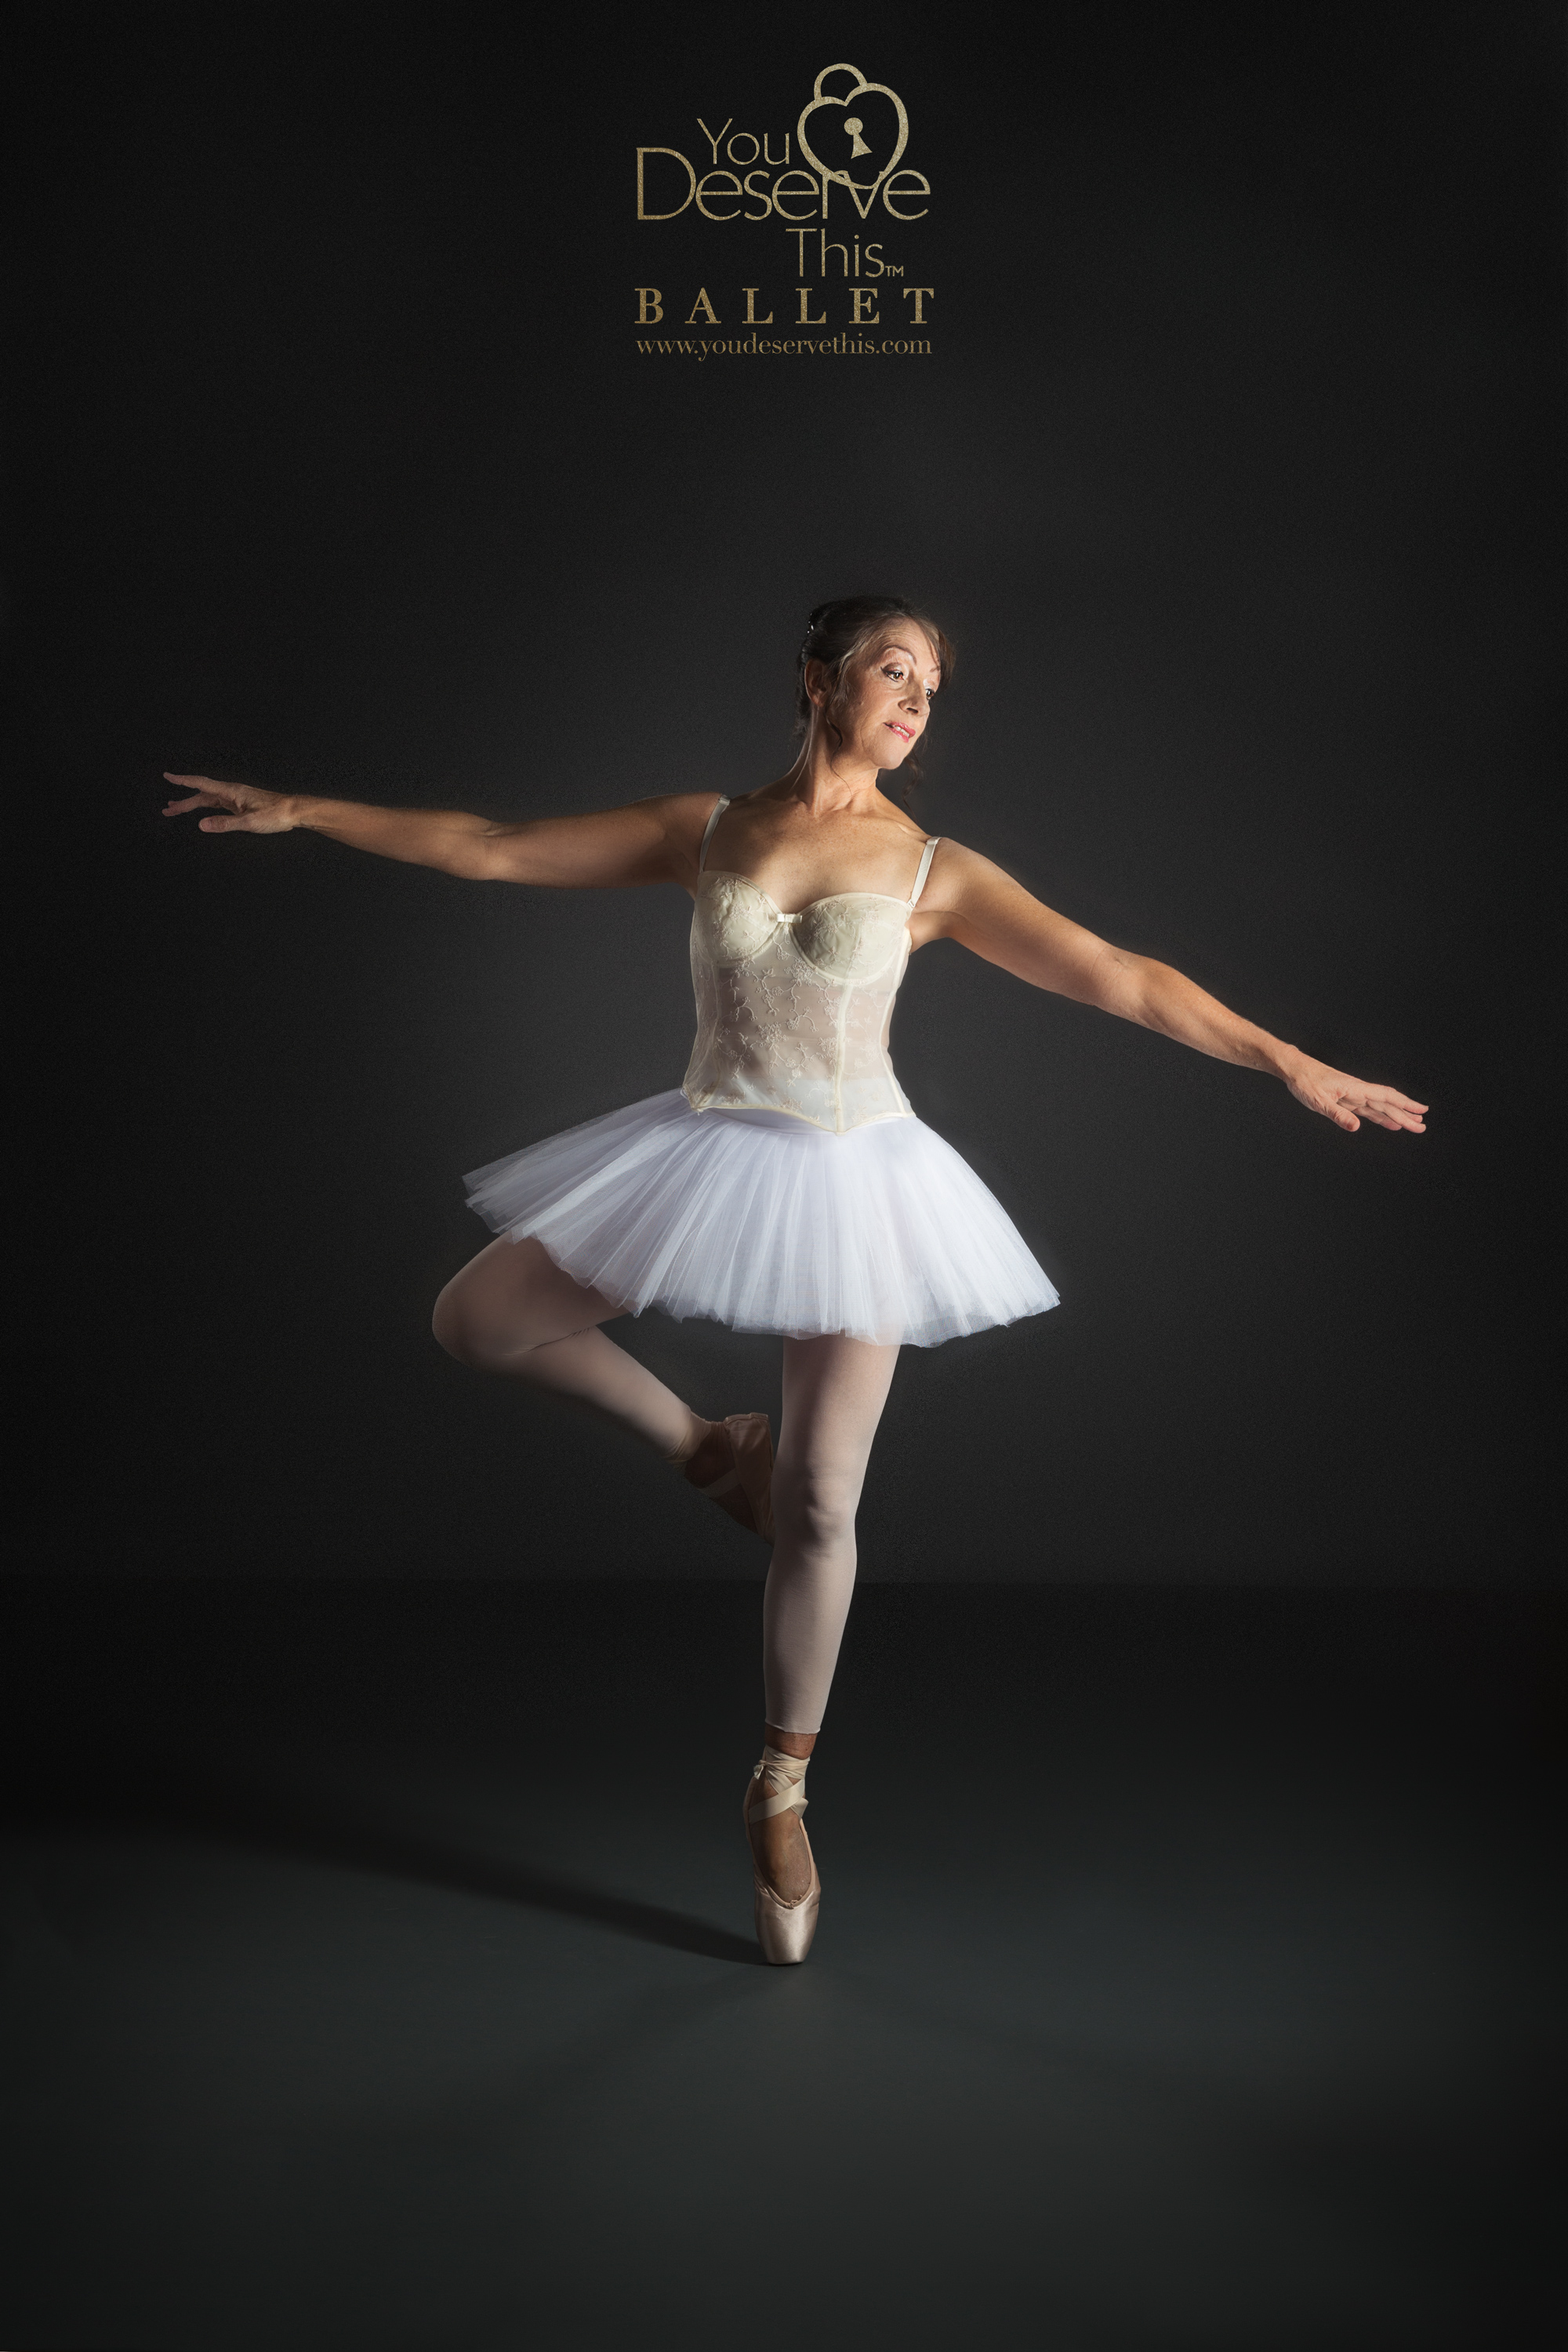 On Point! So beautiful, we are enthralled by Maggie's Skill. Ballet Photos with You Deserve This Photography Hampshire UK